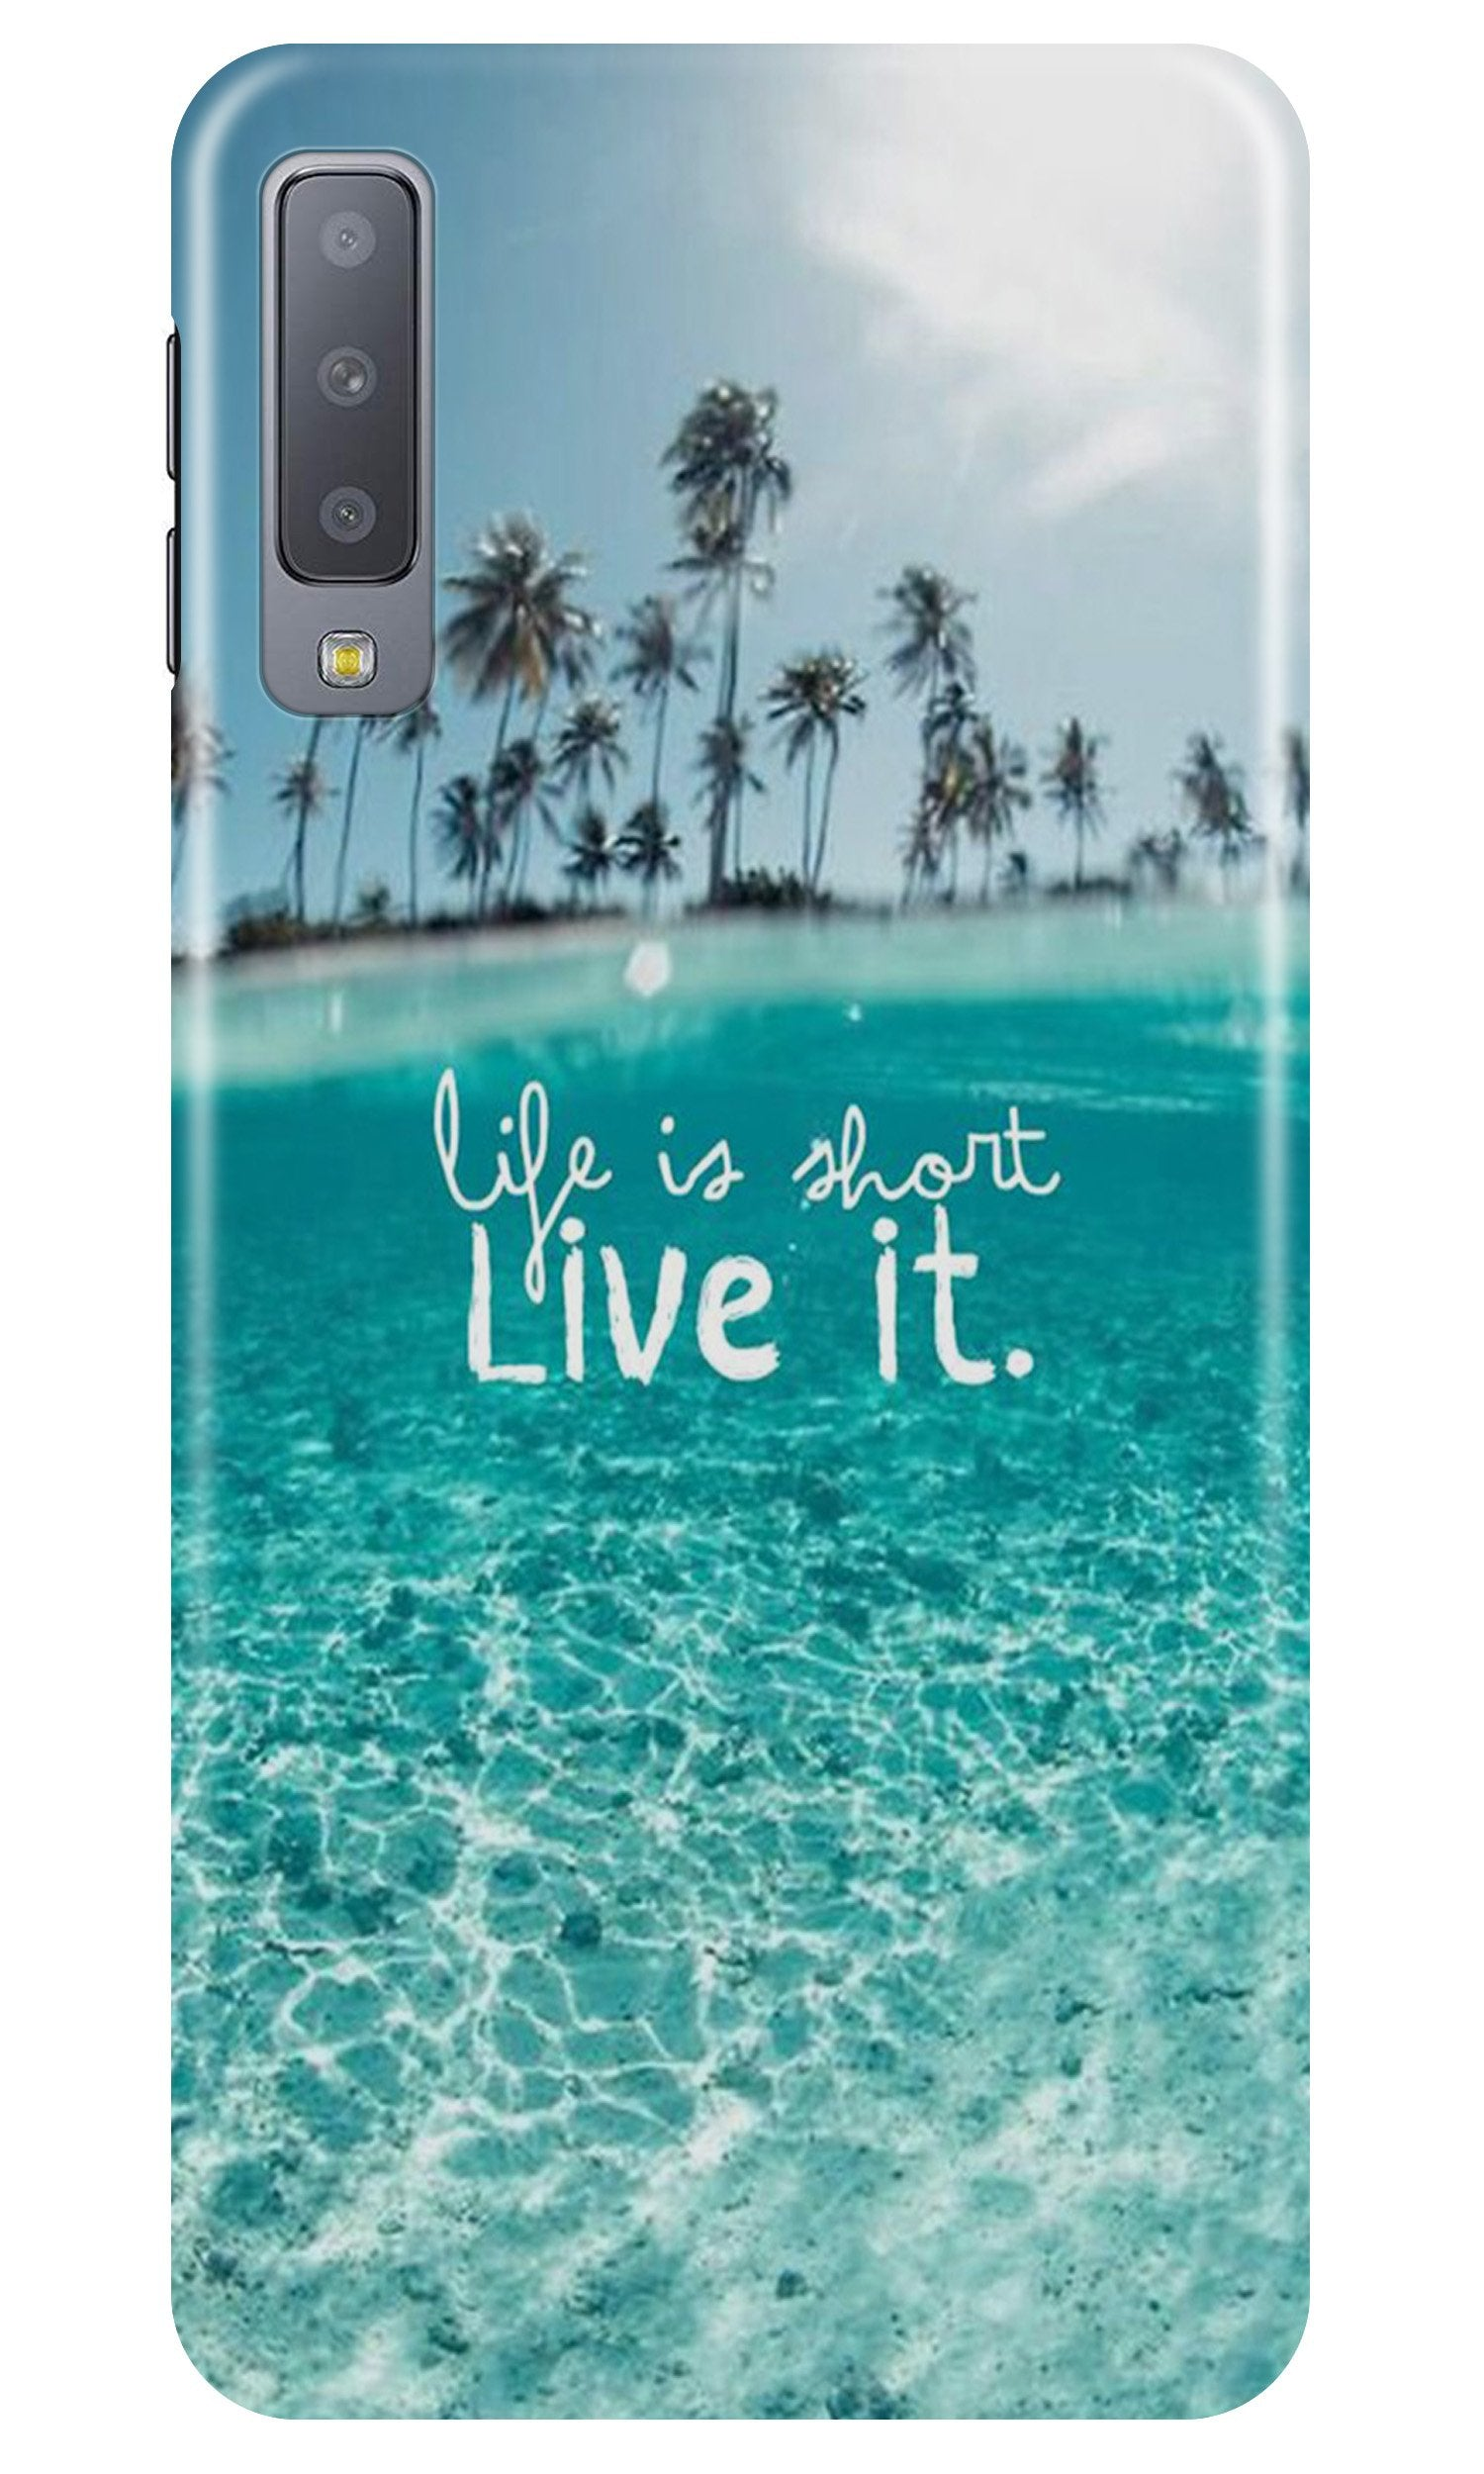 Life is short live it Case for Samsung A50